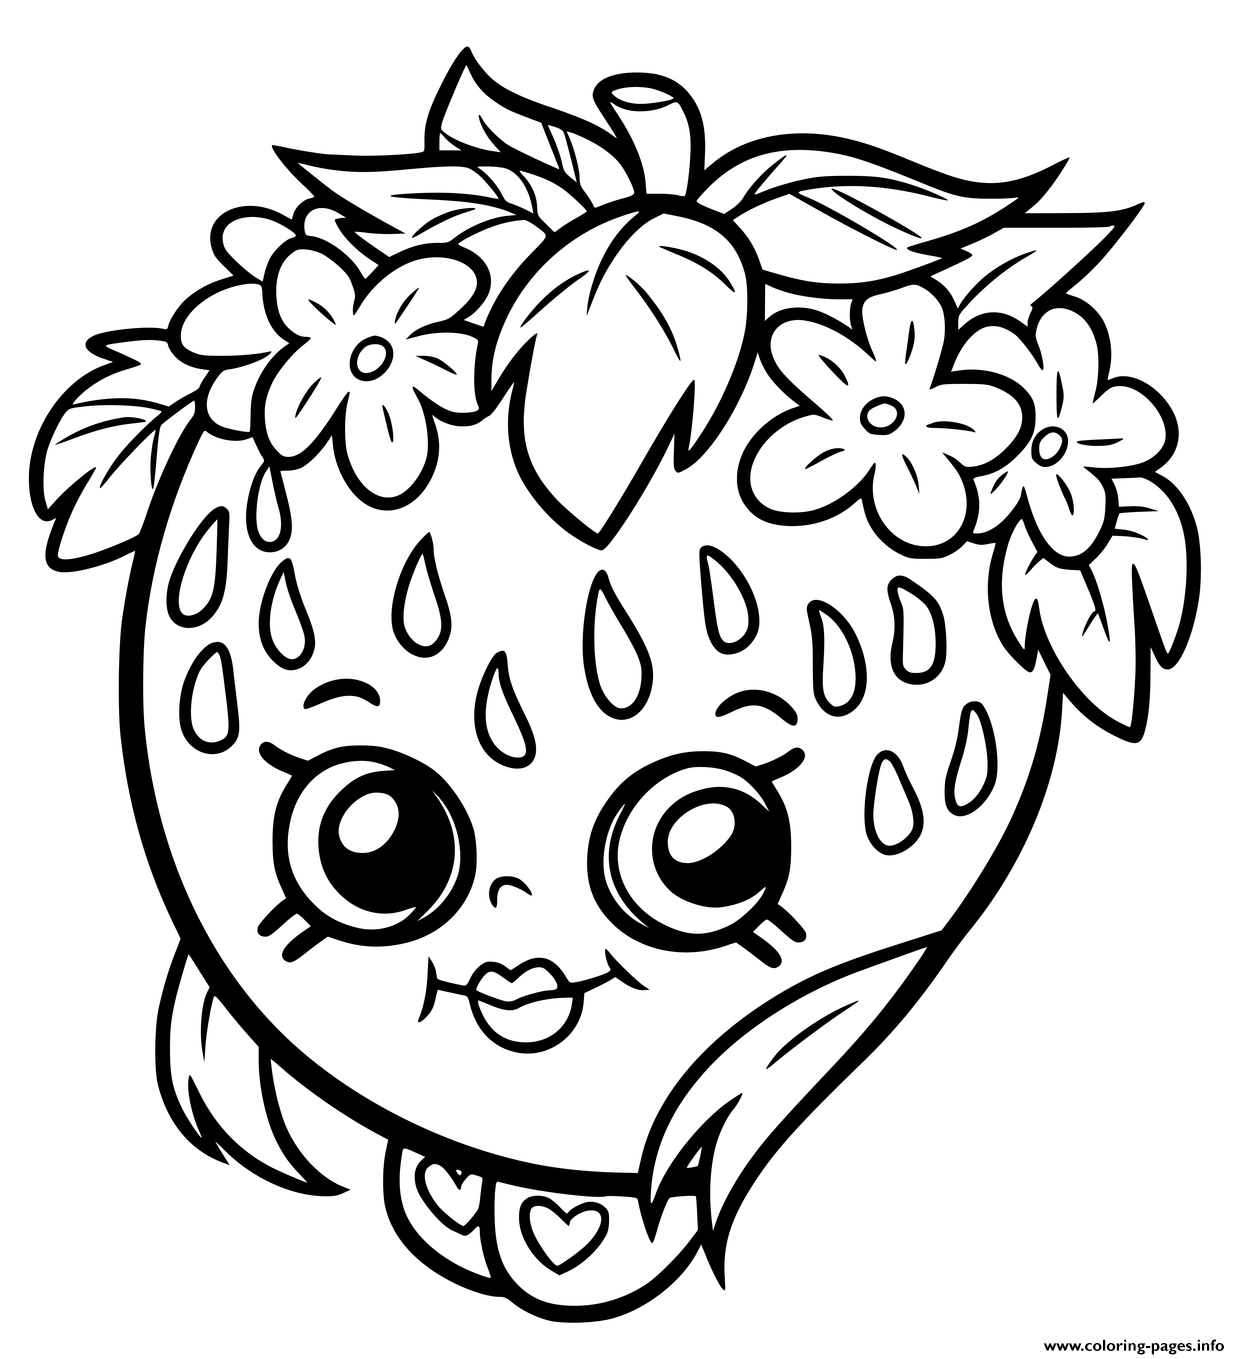 Shopkins coloring pages wishes - Print Shopkins Strawberry Smile Coloring Pages